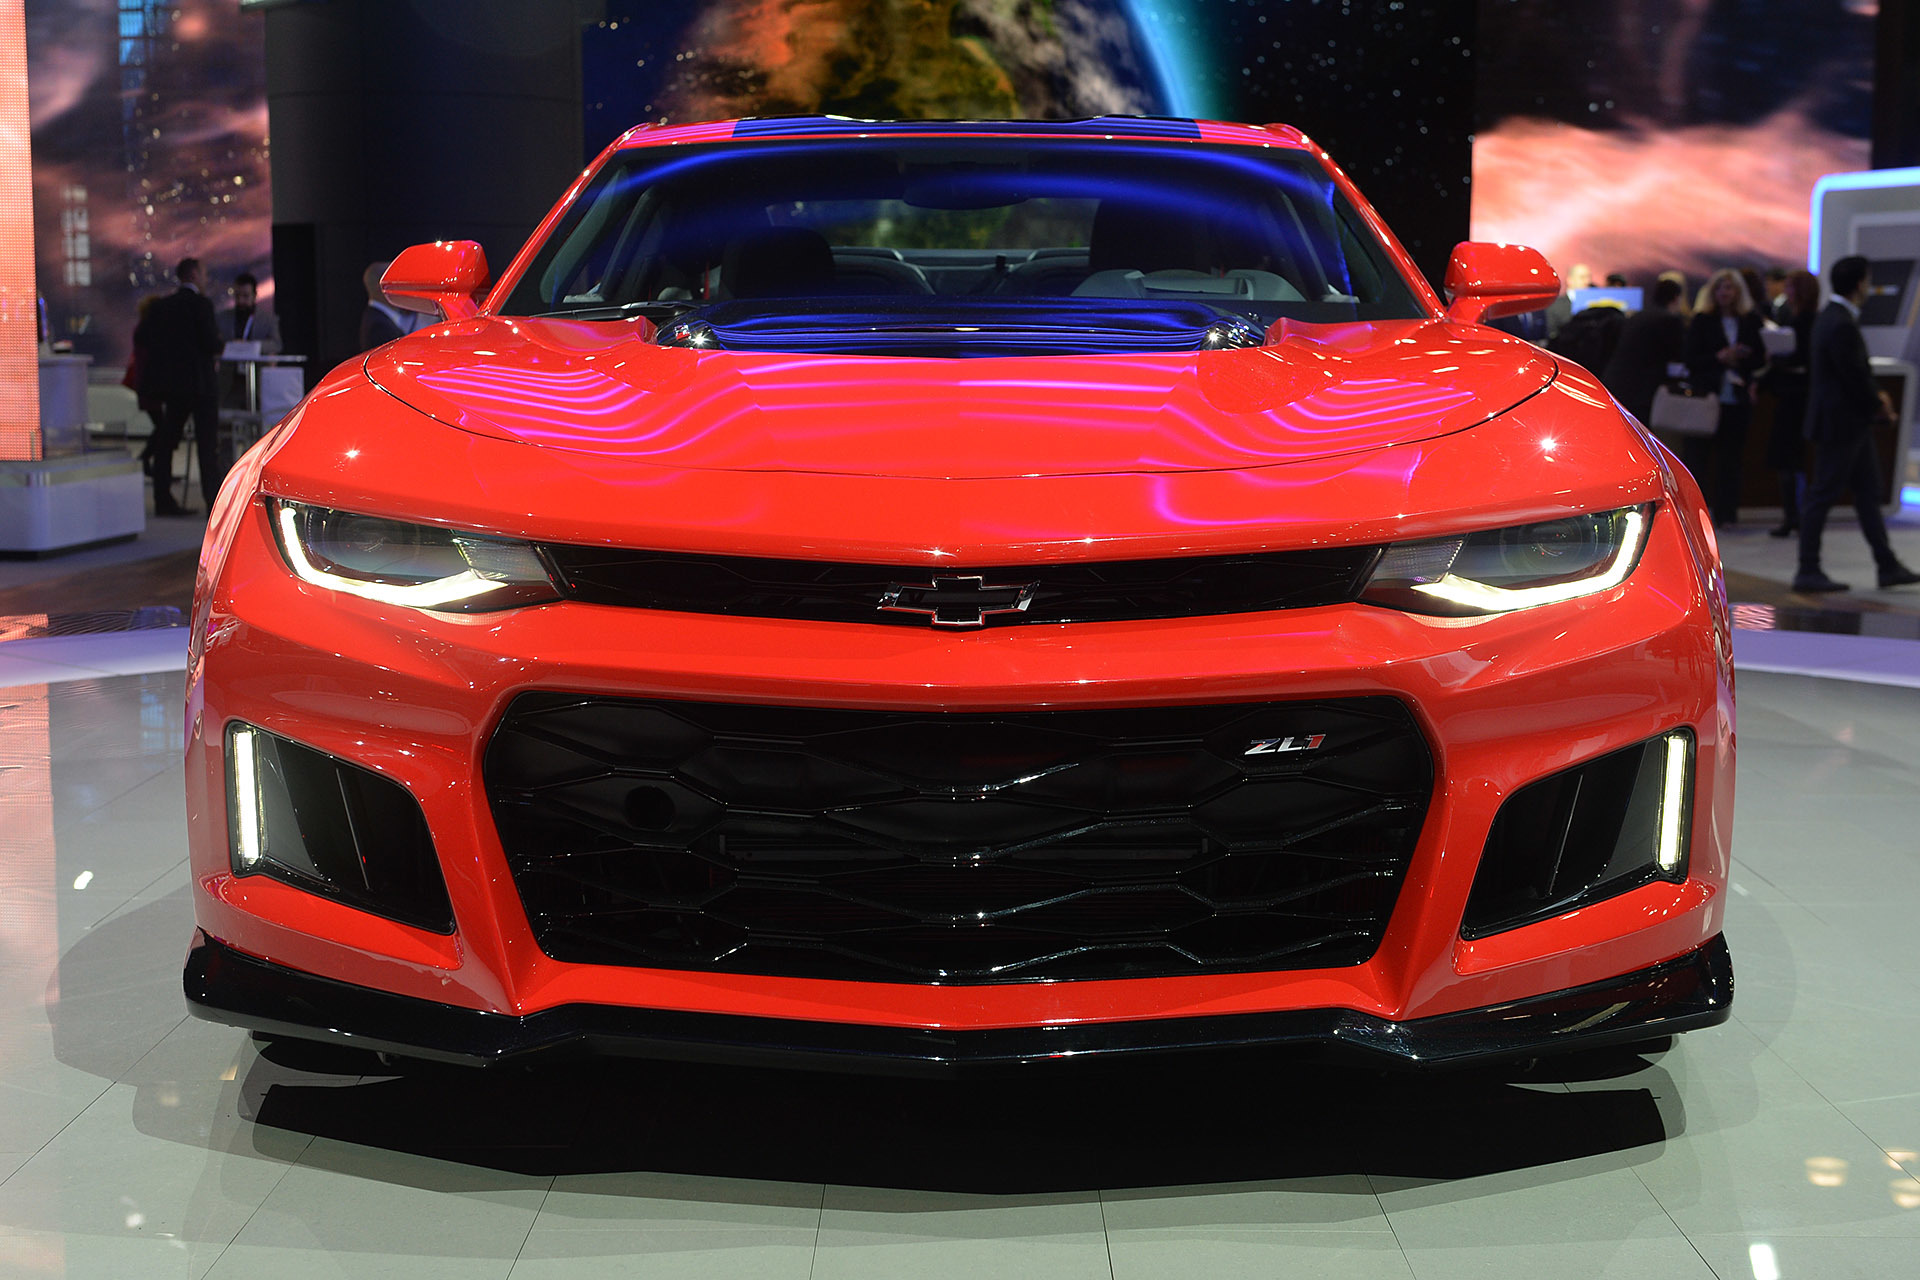 Chevrolet Camaro Zl1 2016 Dark Cars Wallpapers